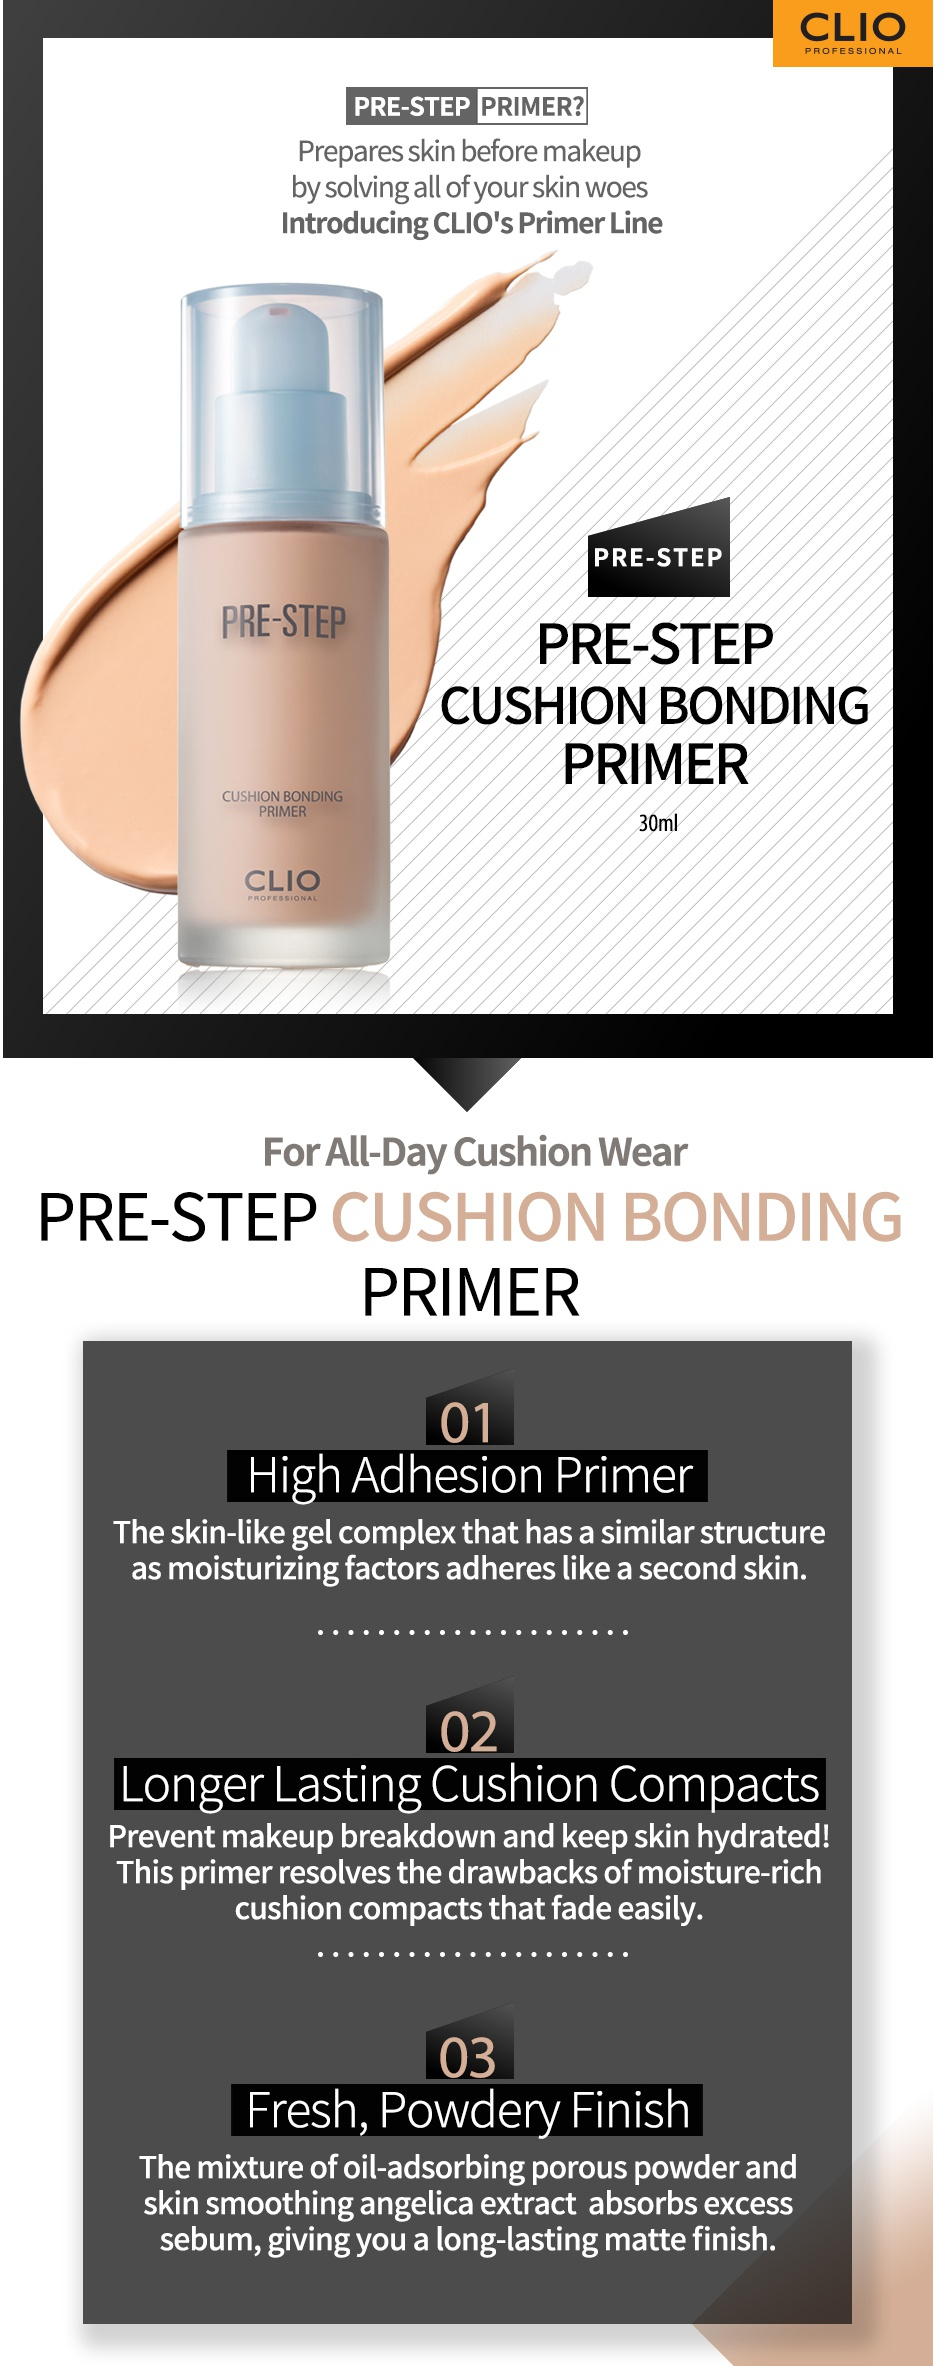 [Clio] Pre-Step cushion bonding primer에 대한 이미지 검색결과